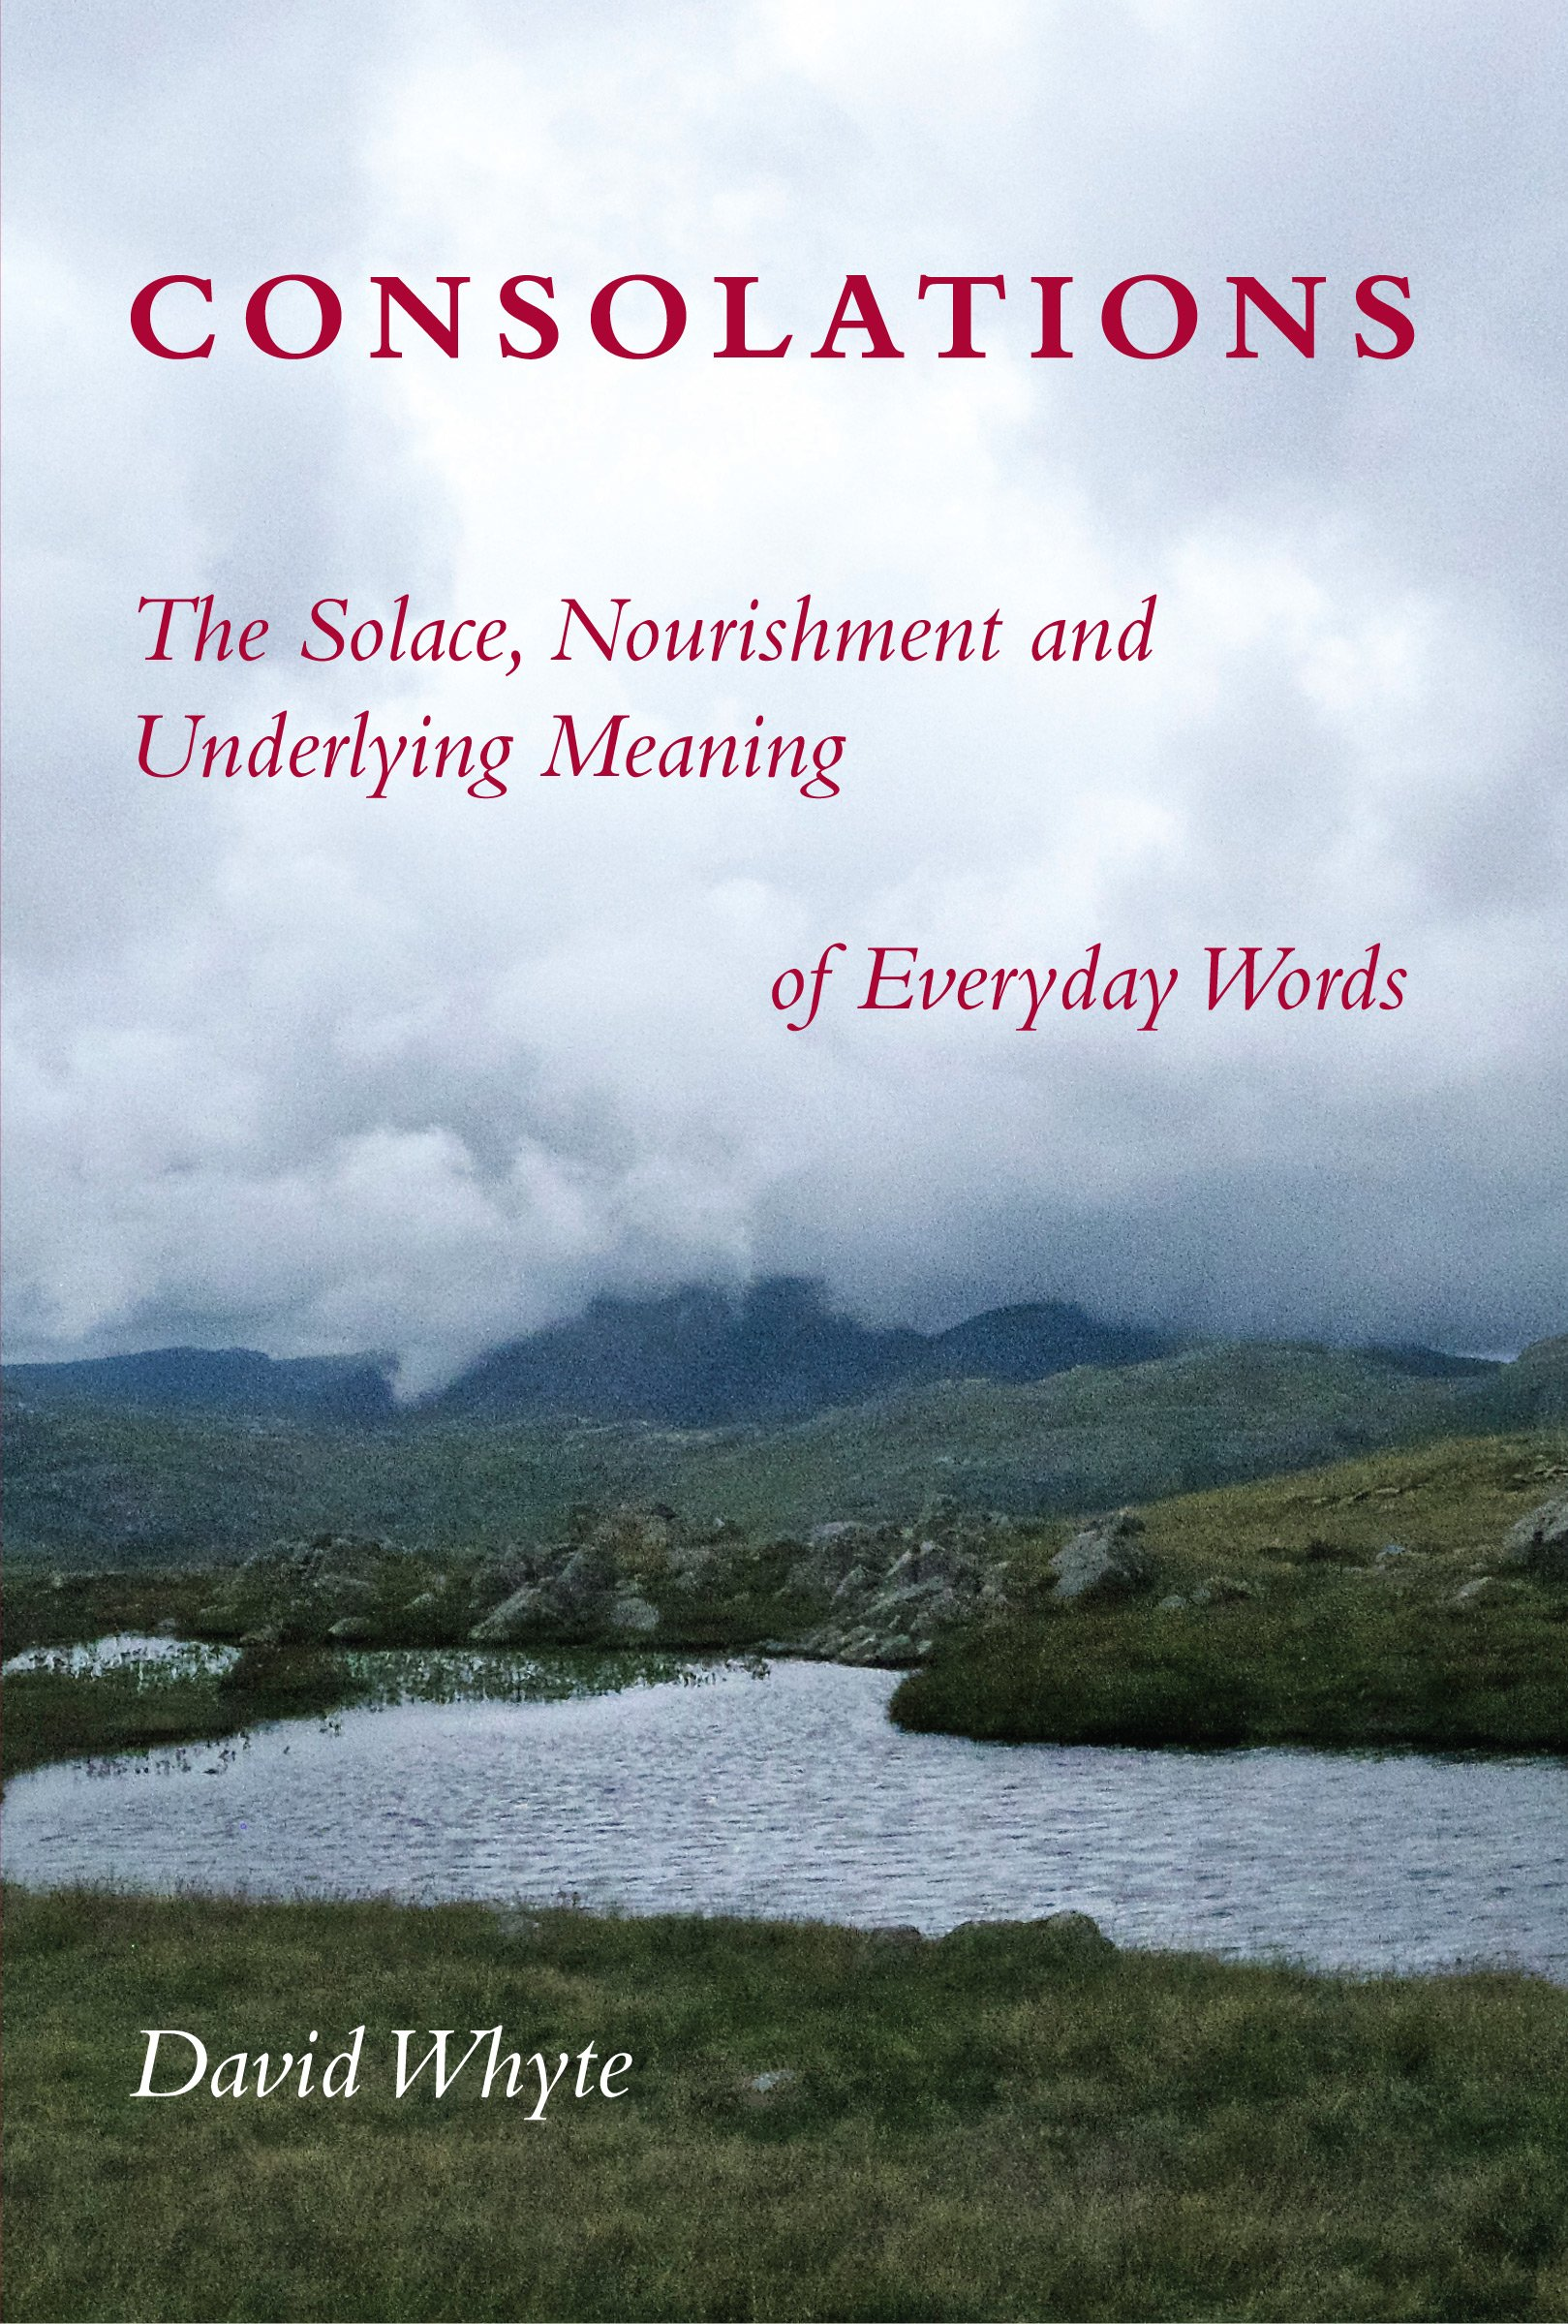 Consolations: The Solace, Nourishment, and Meanings of Everyday Words book cover